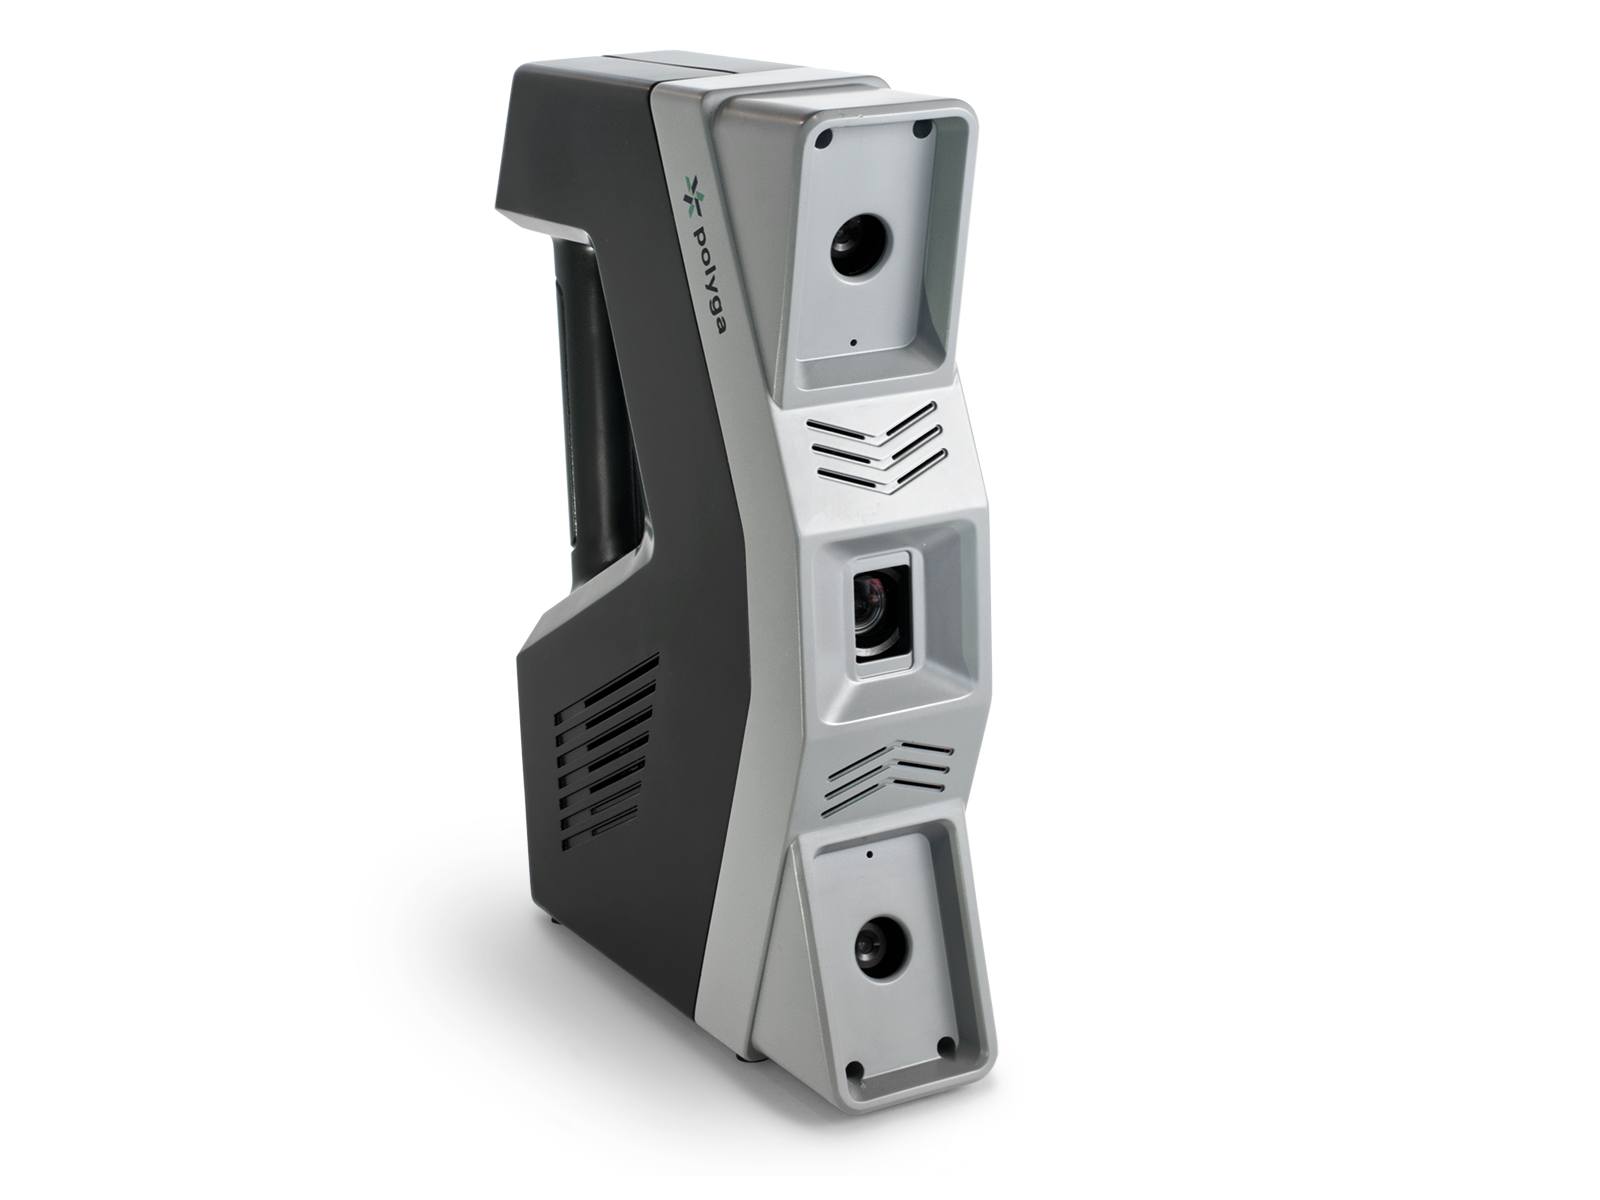 Polyga launches new H3 handheld 3D scanner - Technical specs and pricing